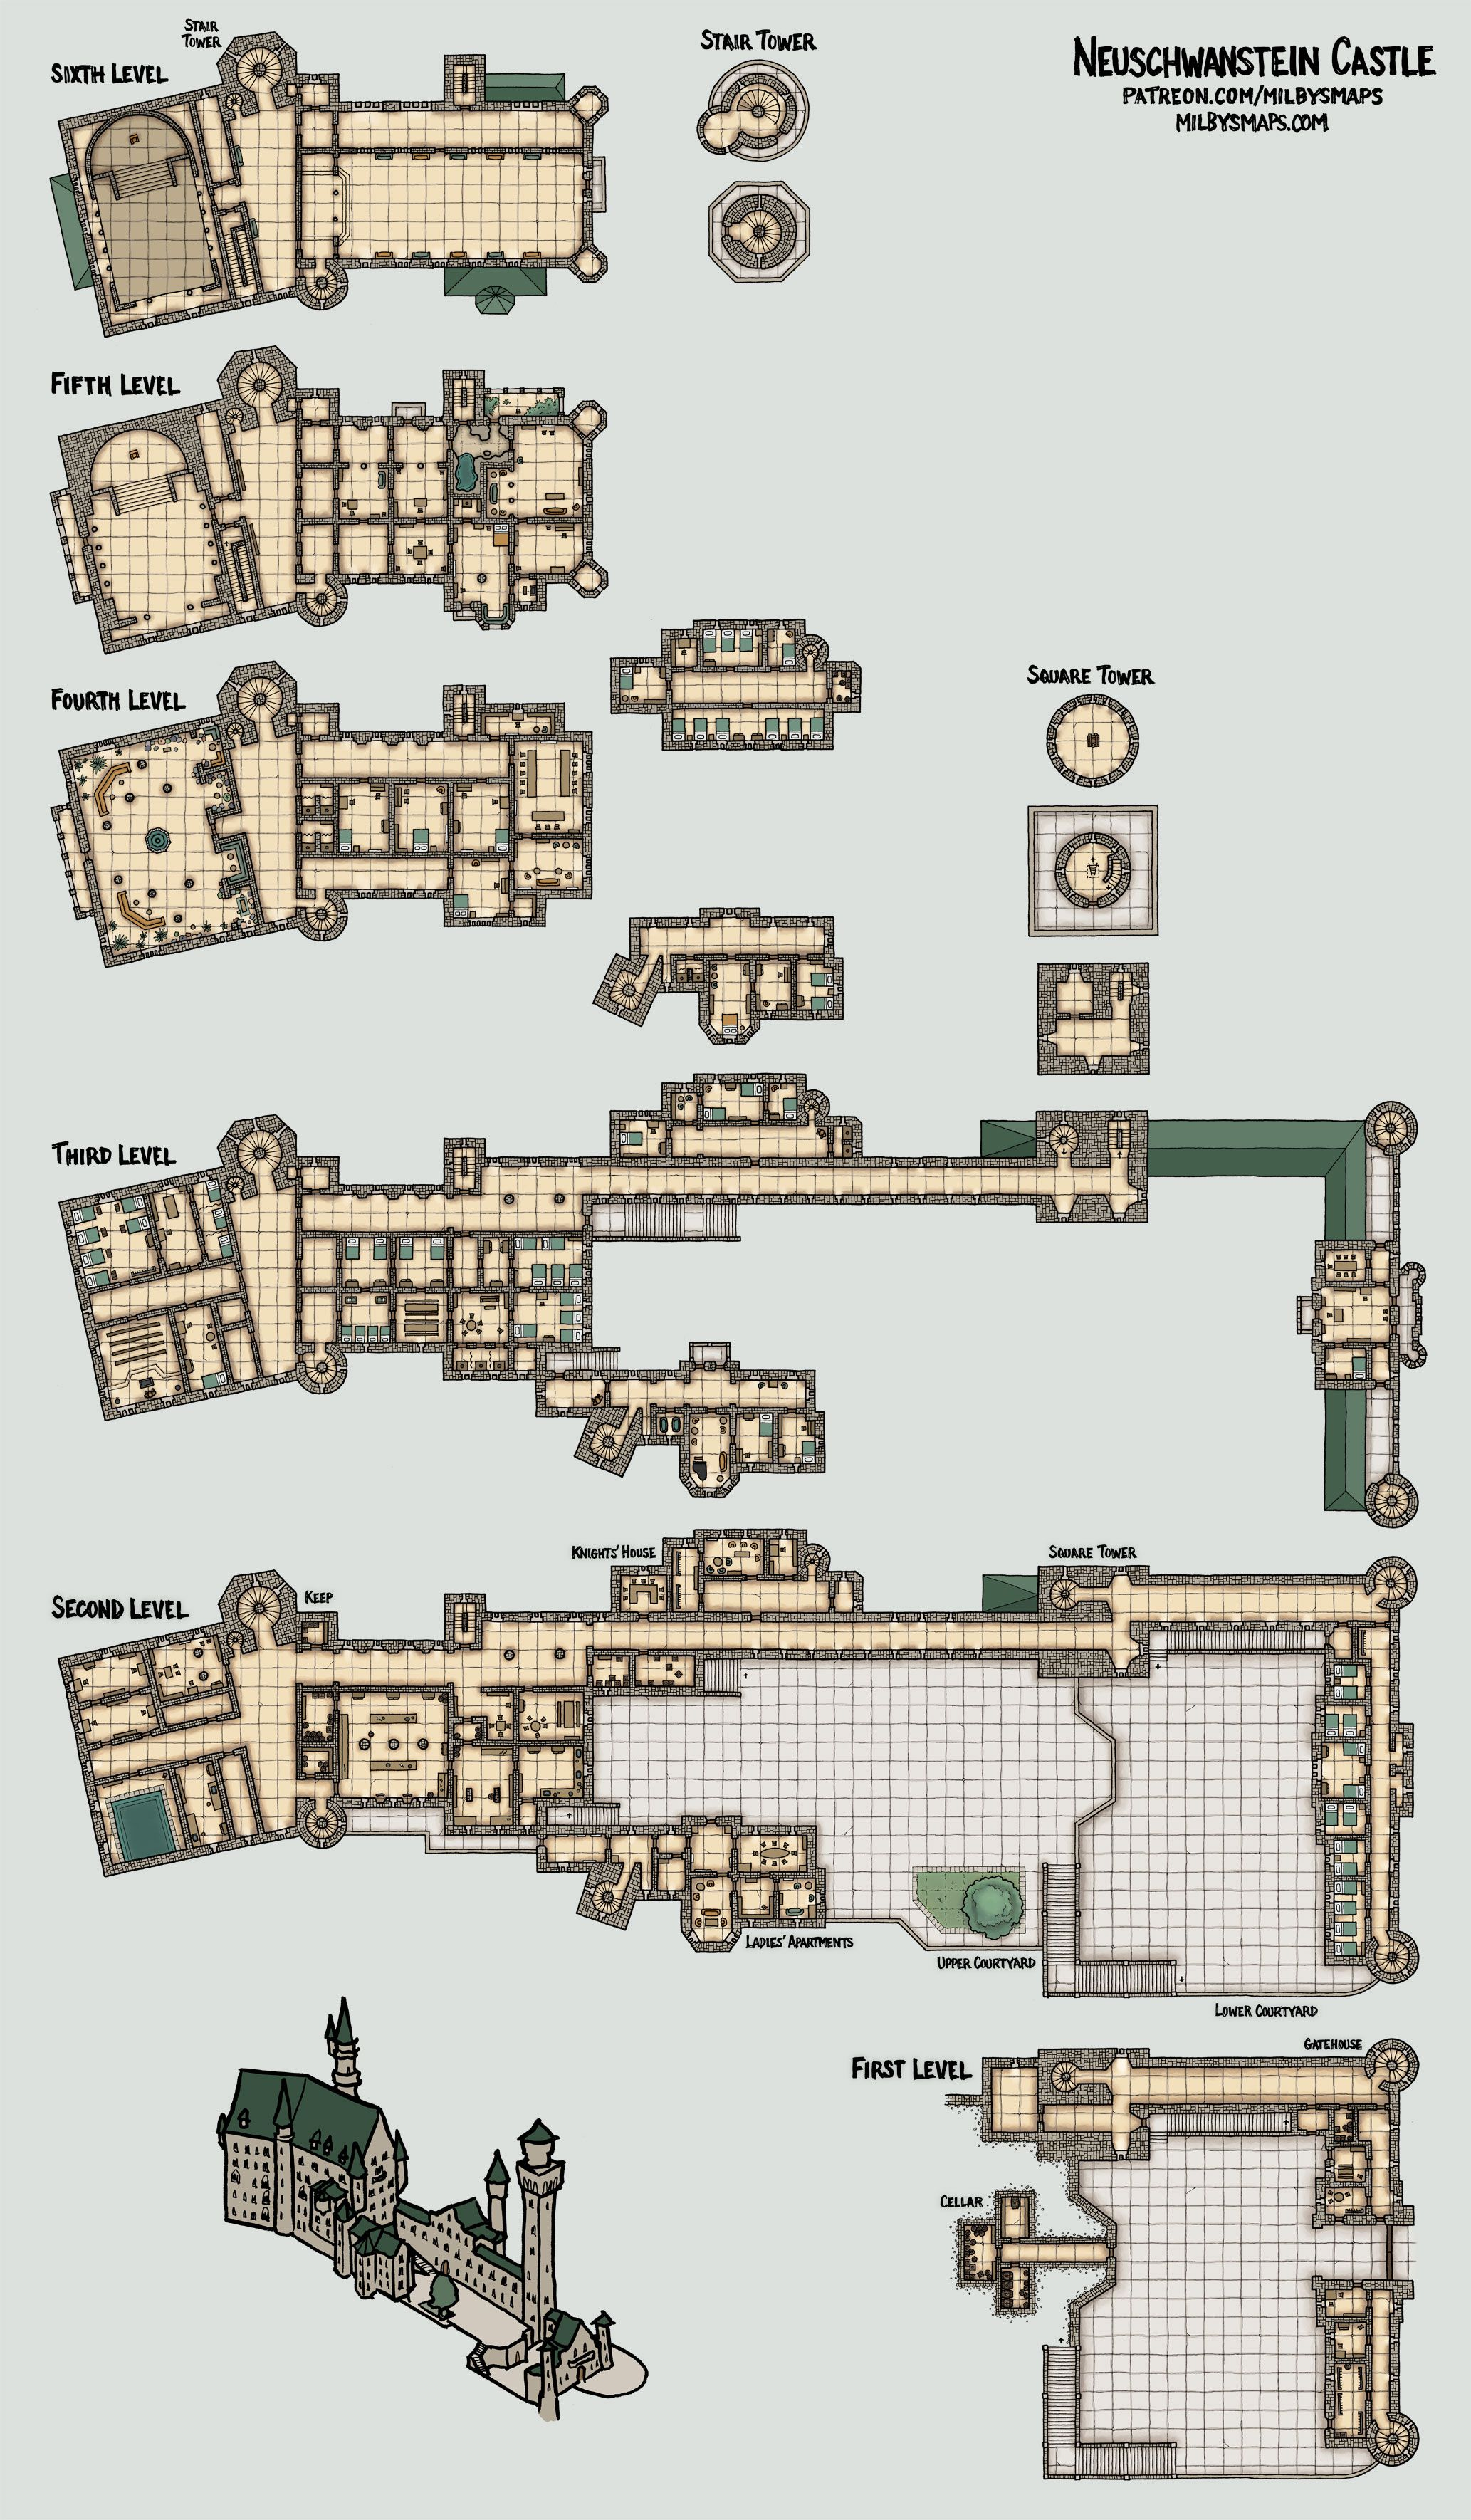 Neuschwanstein castle map by Milby's map Tabletop rpg